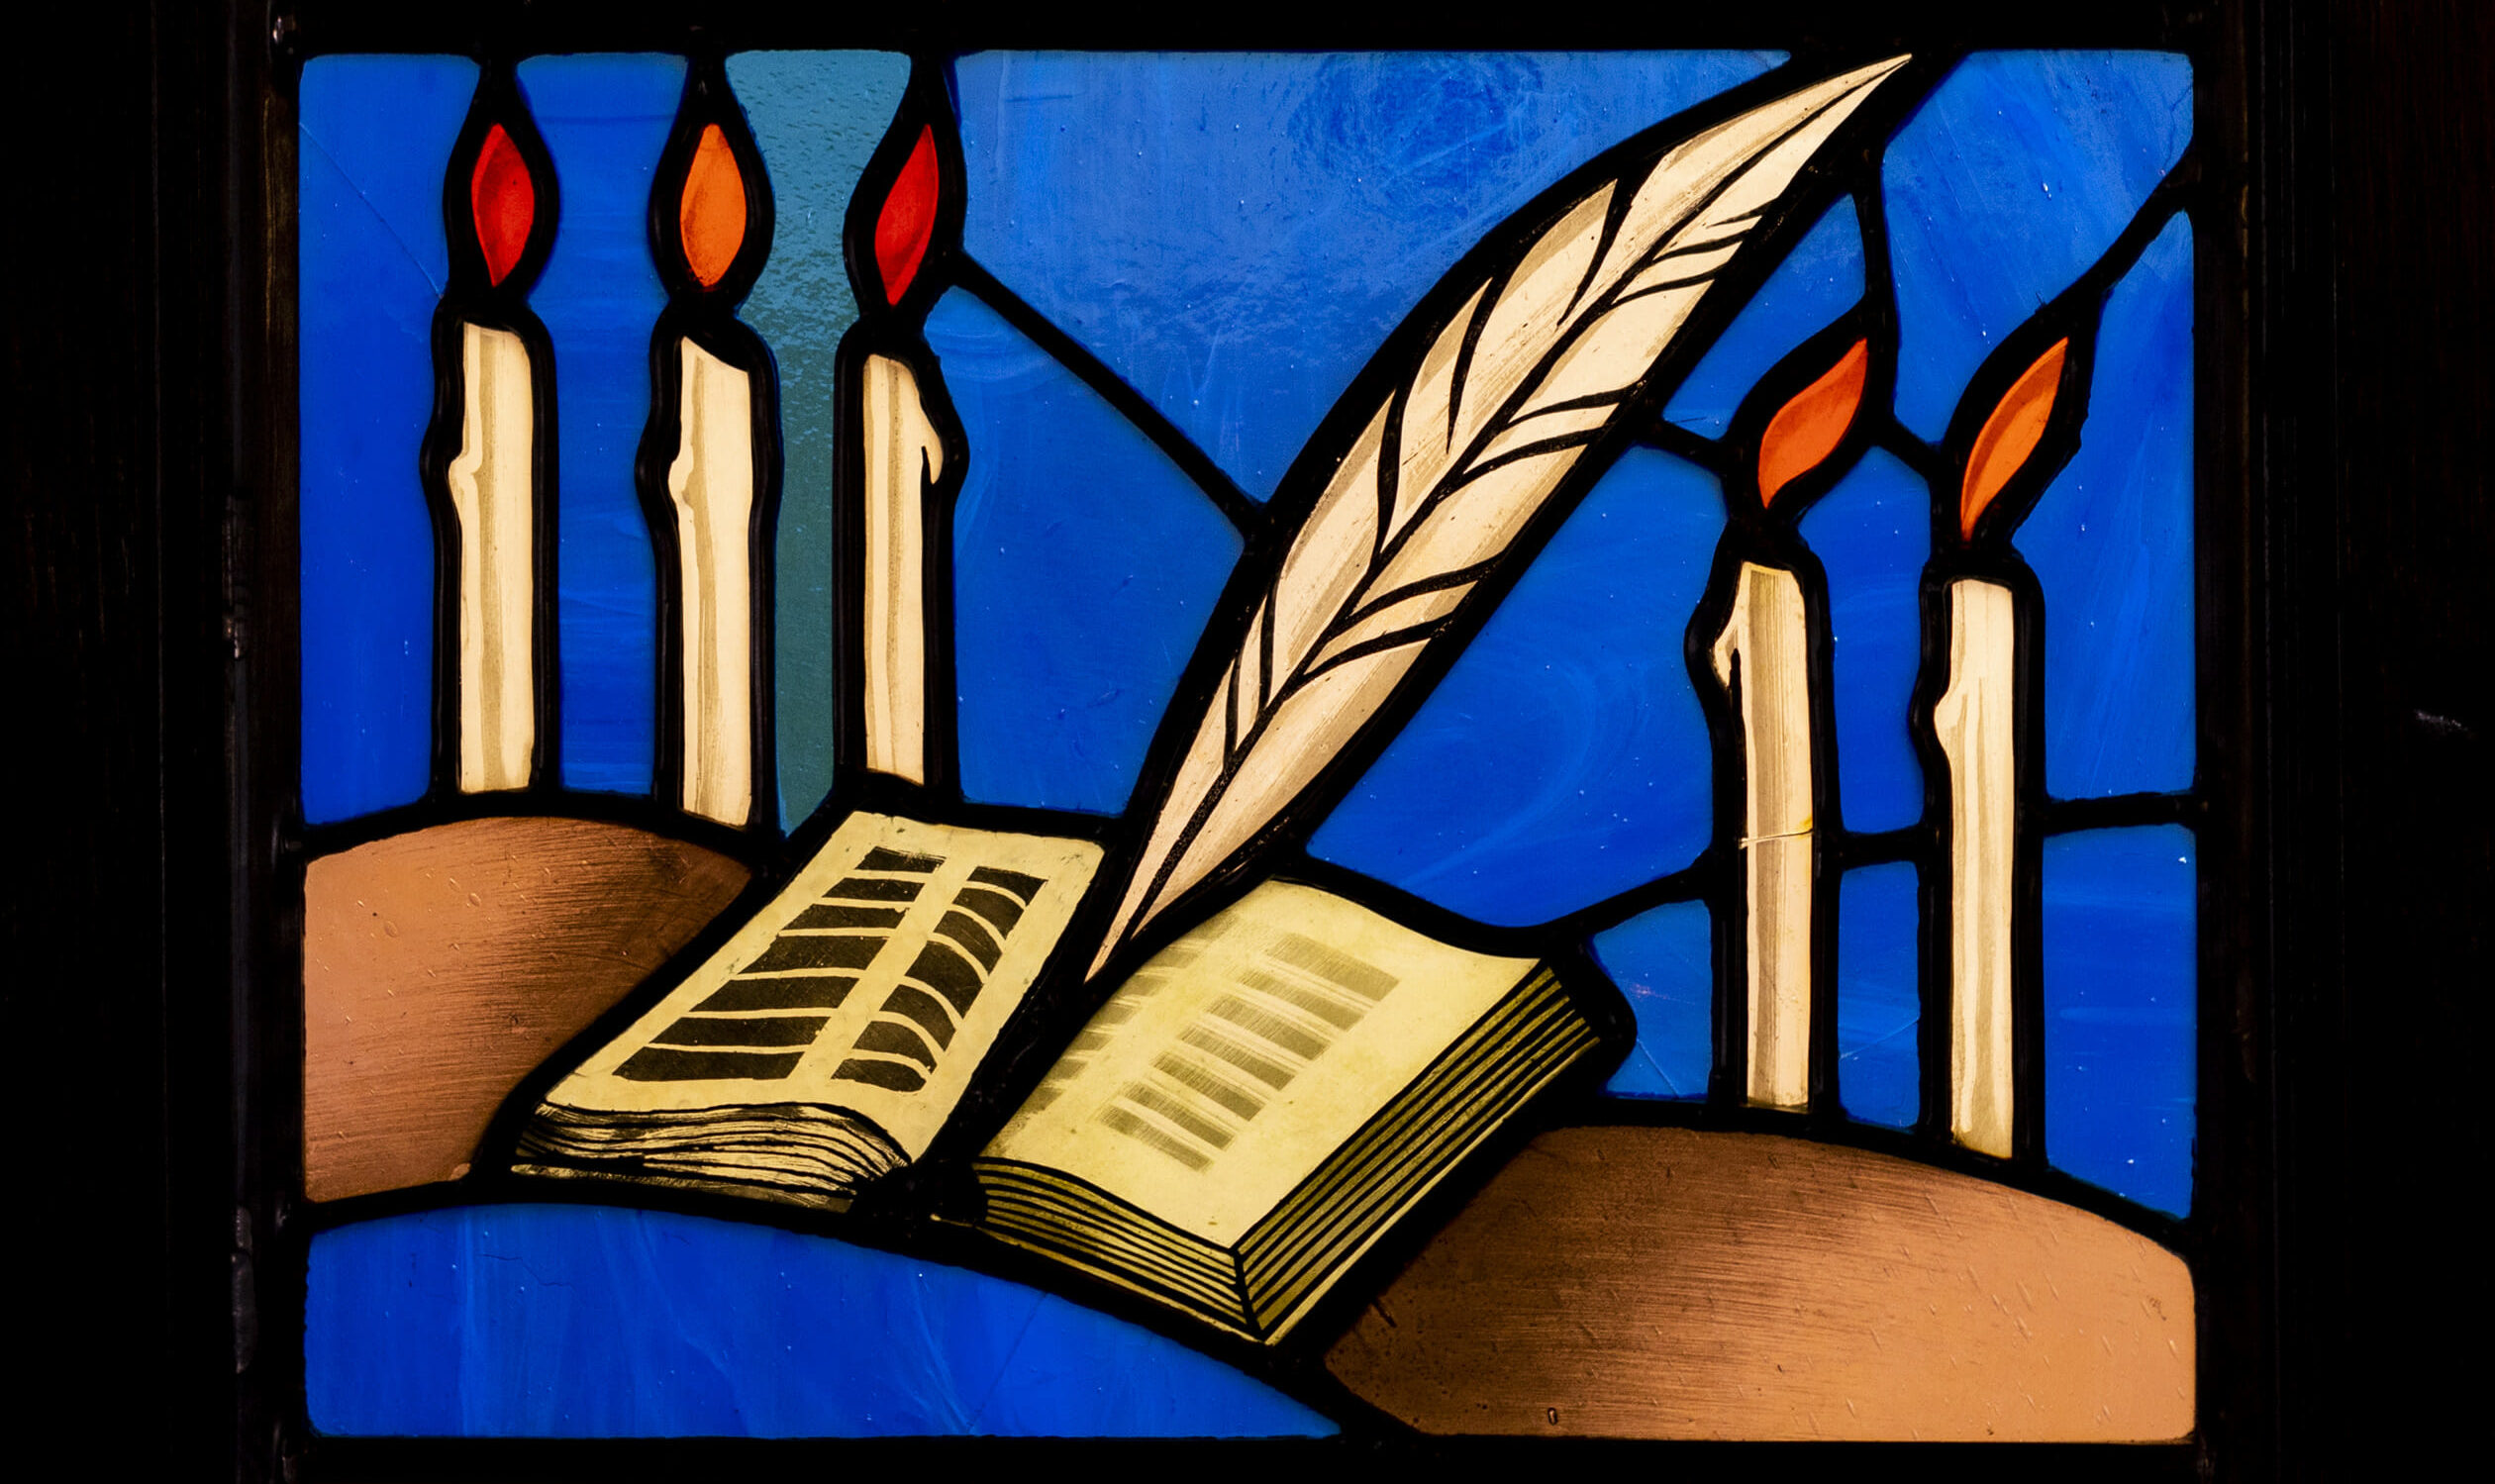 Yom Kippur stained glass window